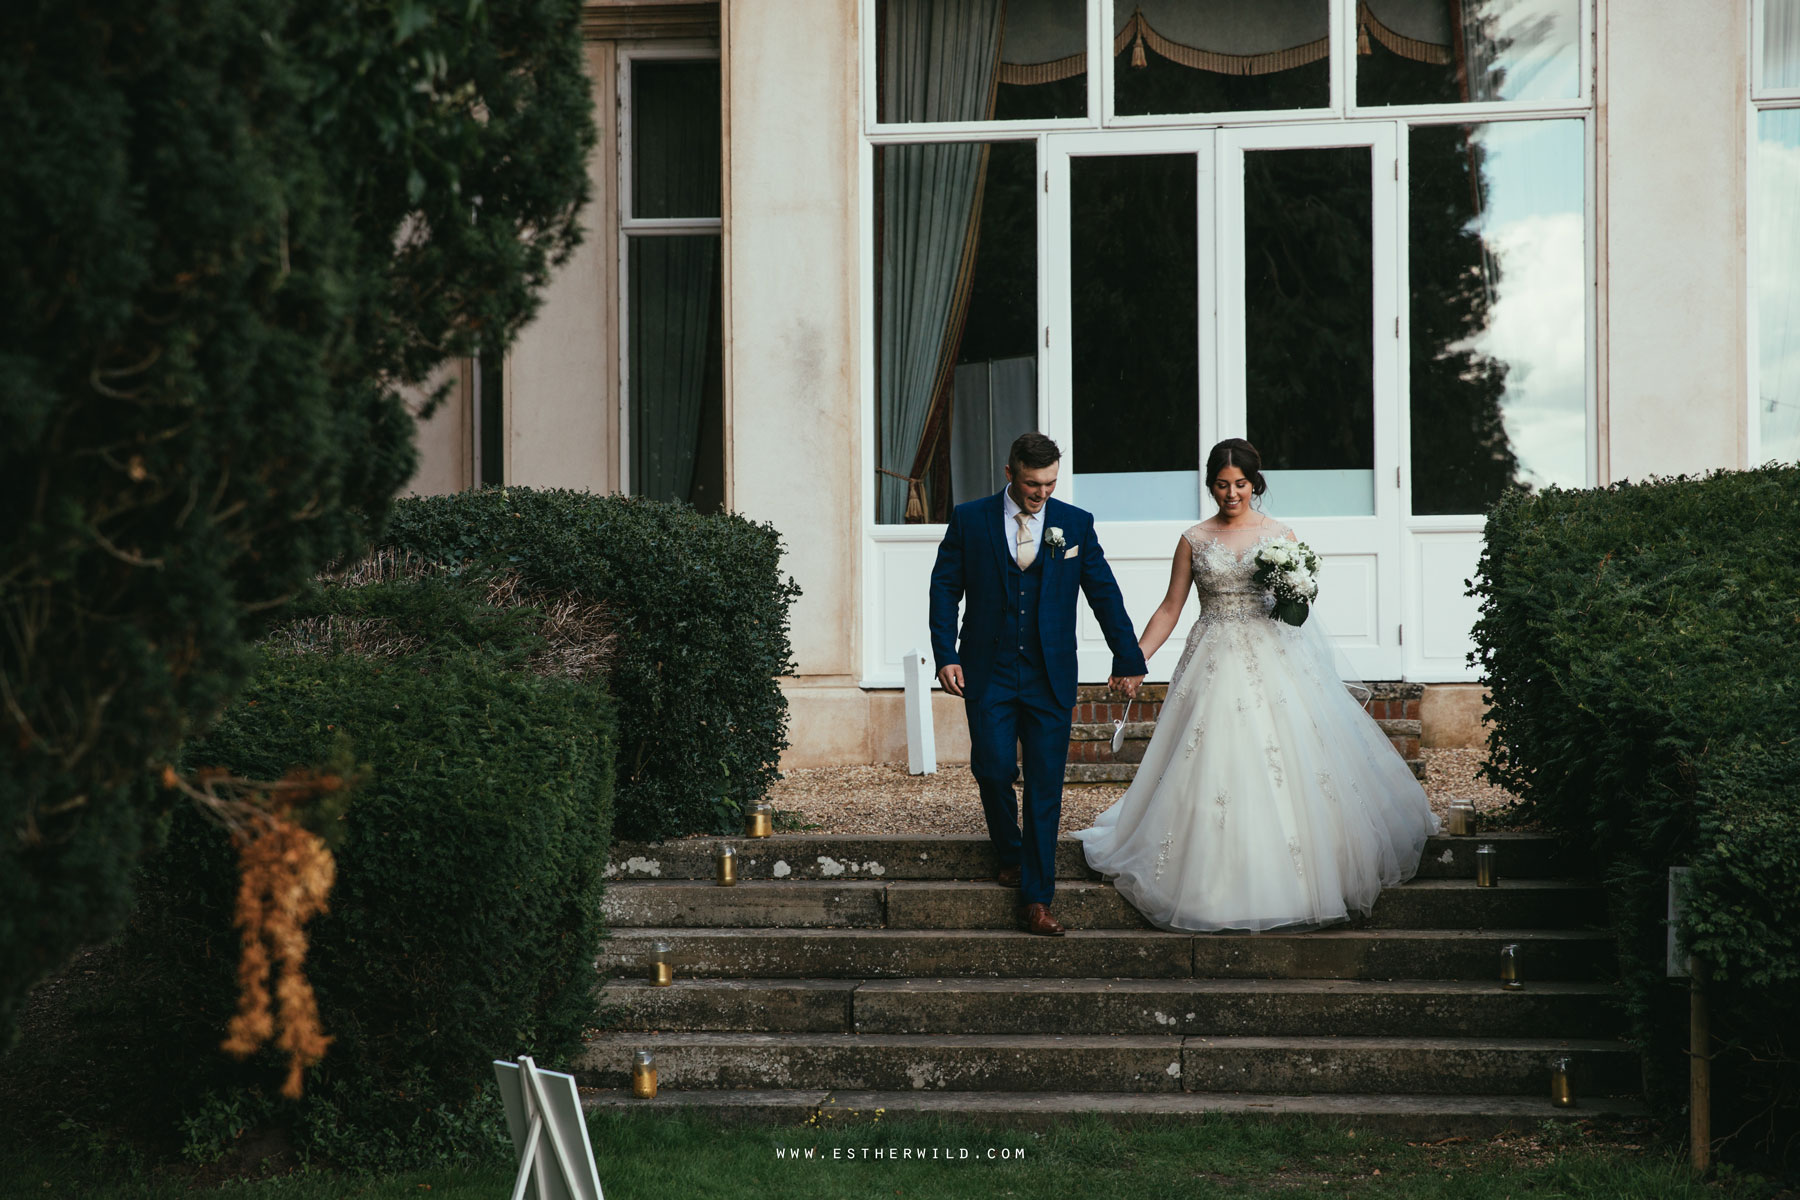 Lynford_Hall_Wedding_Thetford_Mundford_Esther_Wild_Photographer_IMG_1533.jpg